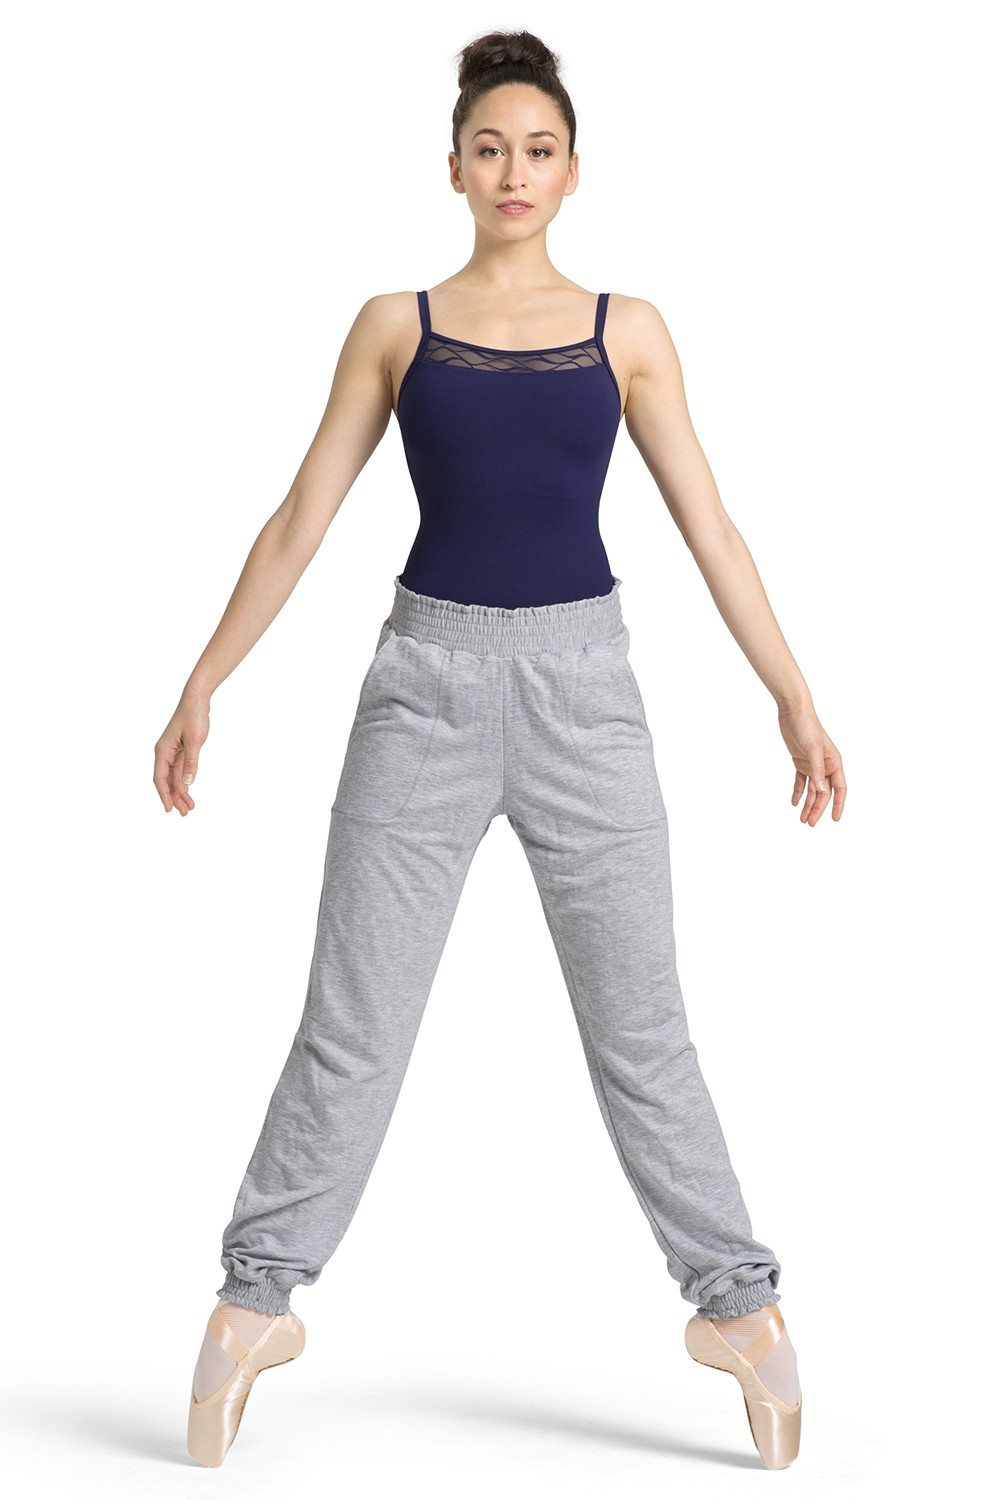 Shirred Hem Pant Women's Dance Pants